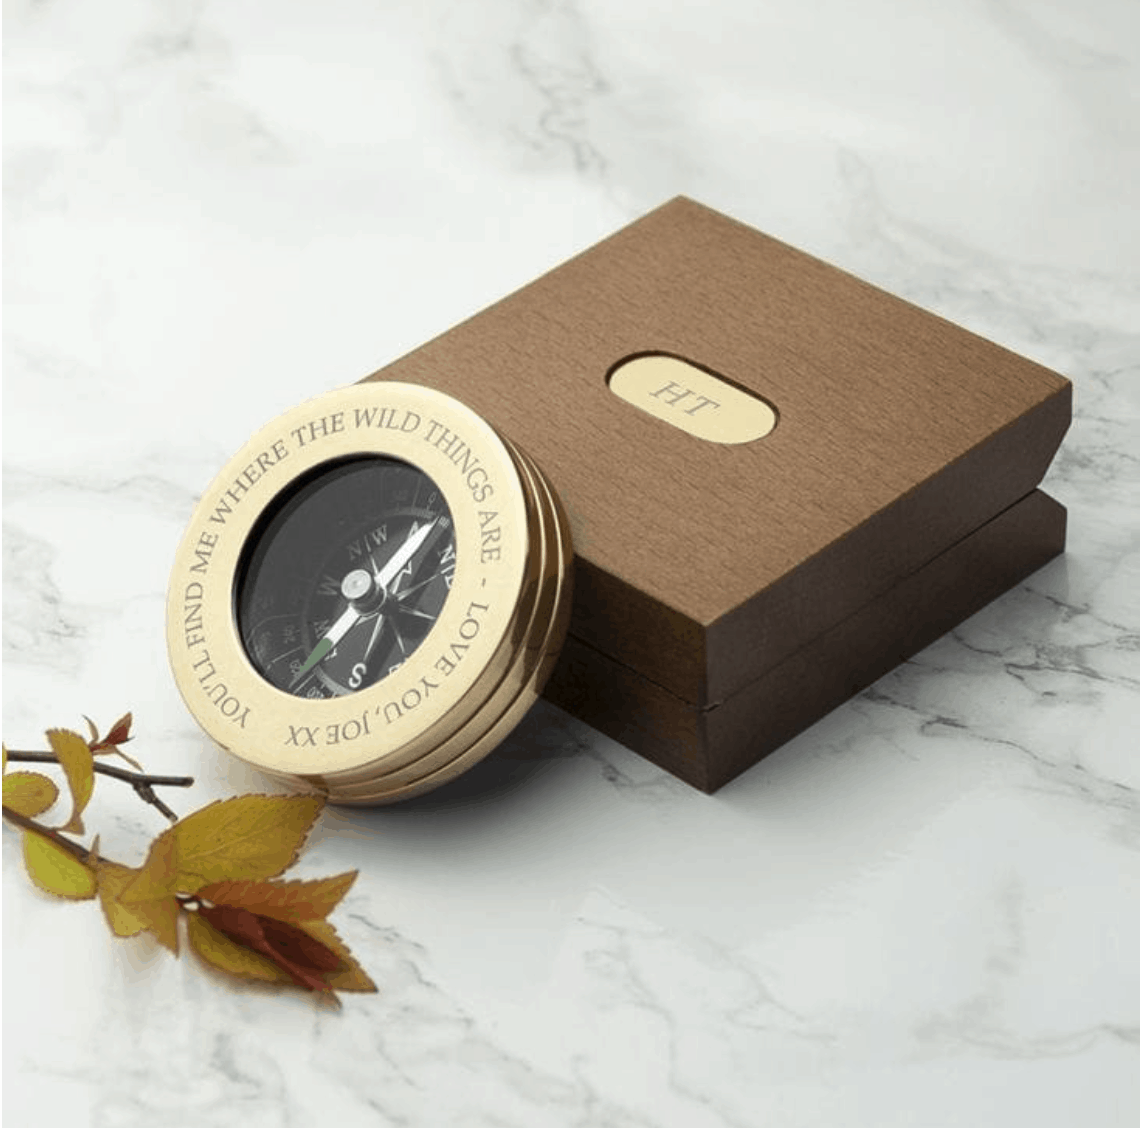 Gift ideas for someone travelling - personalized compass in a box